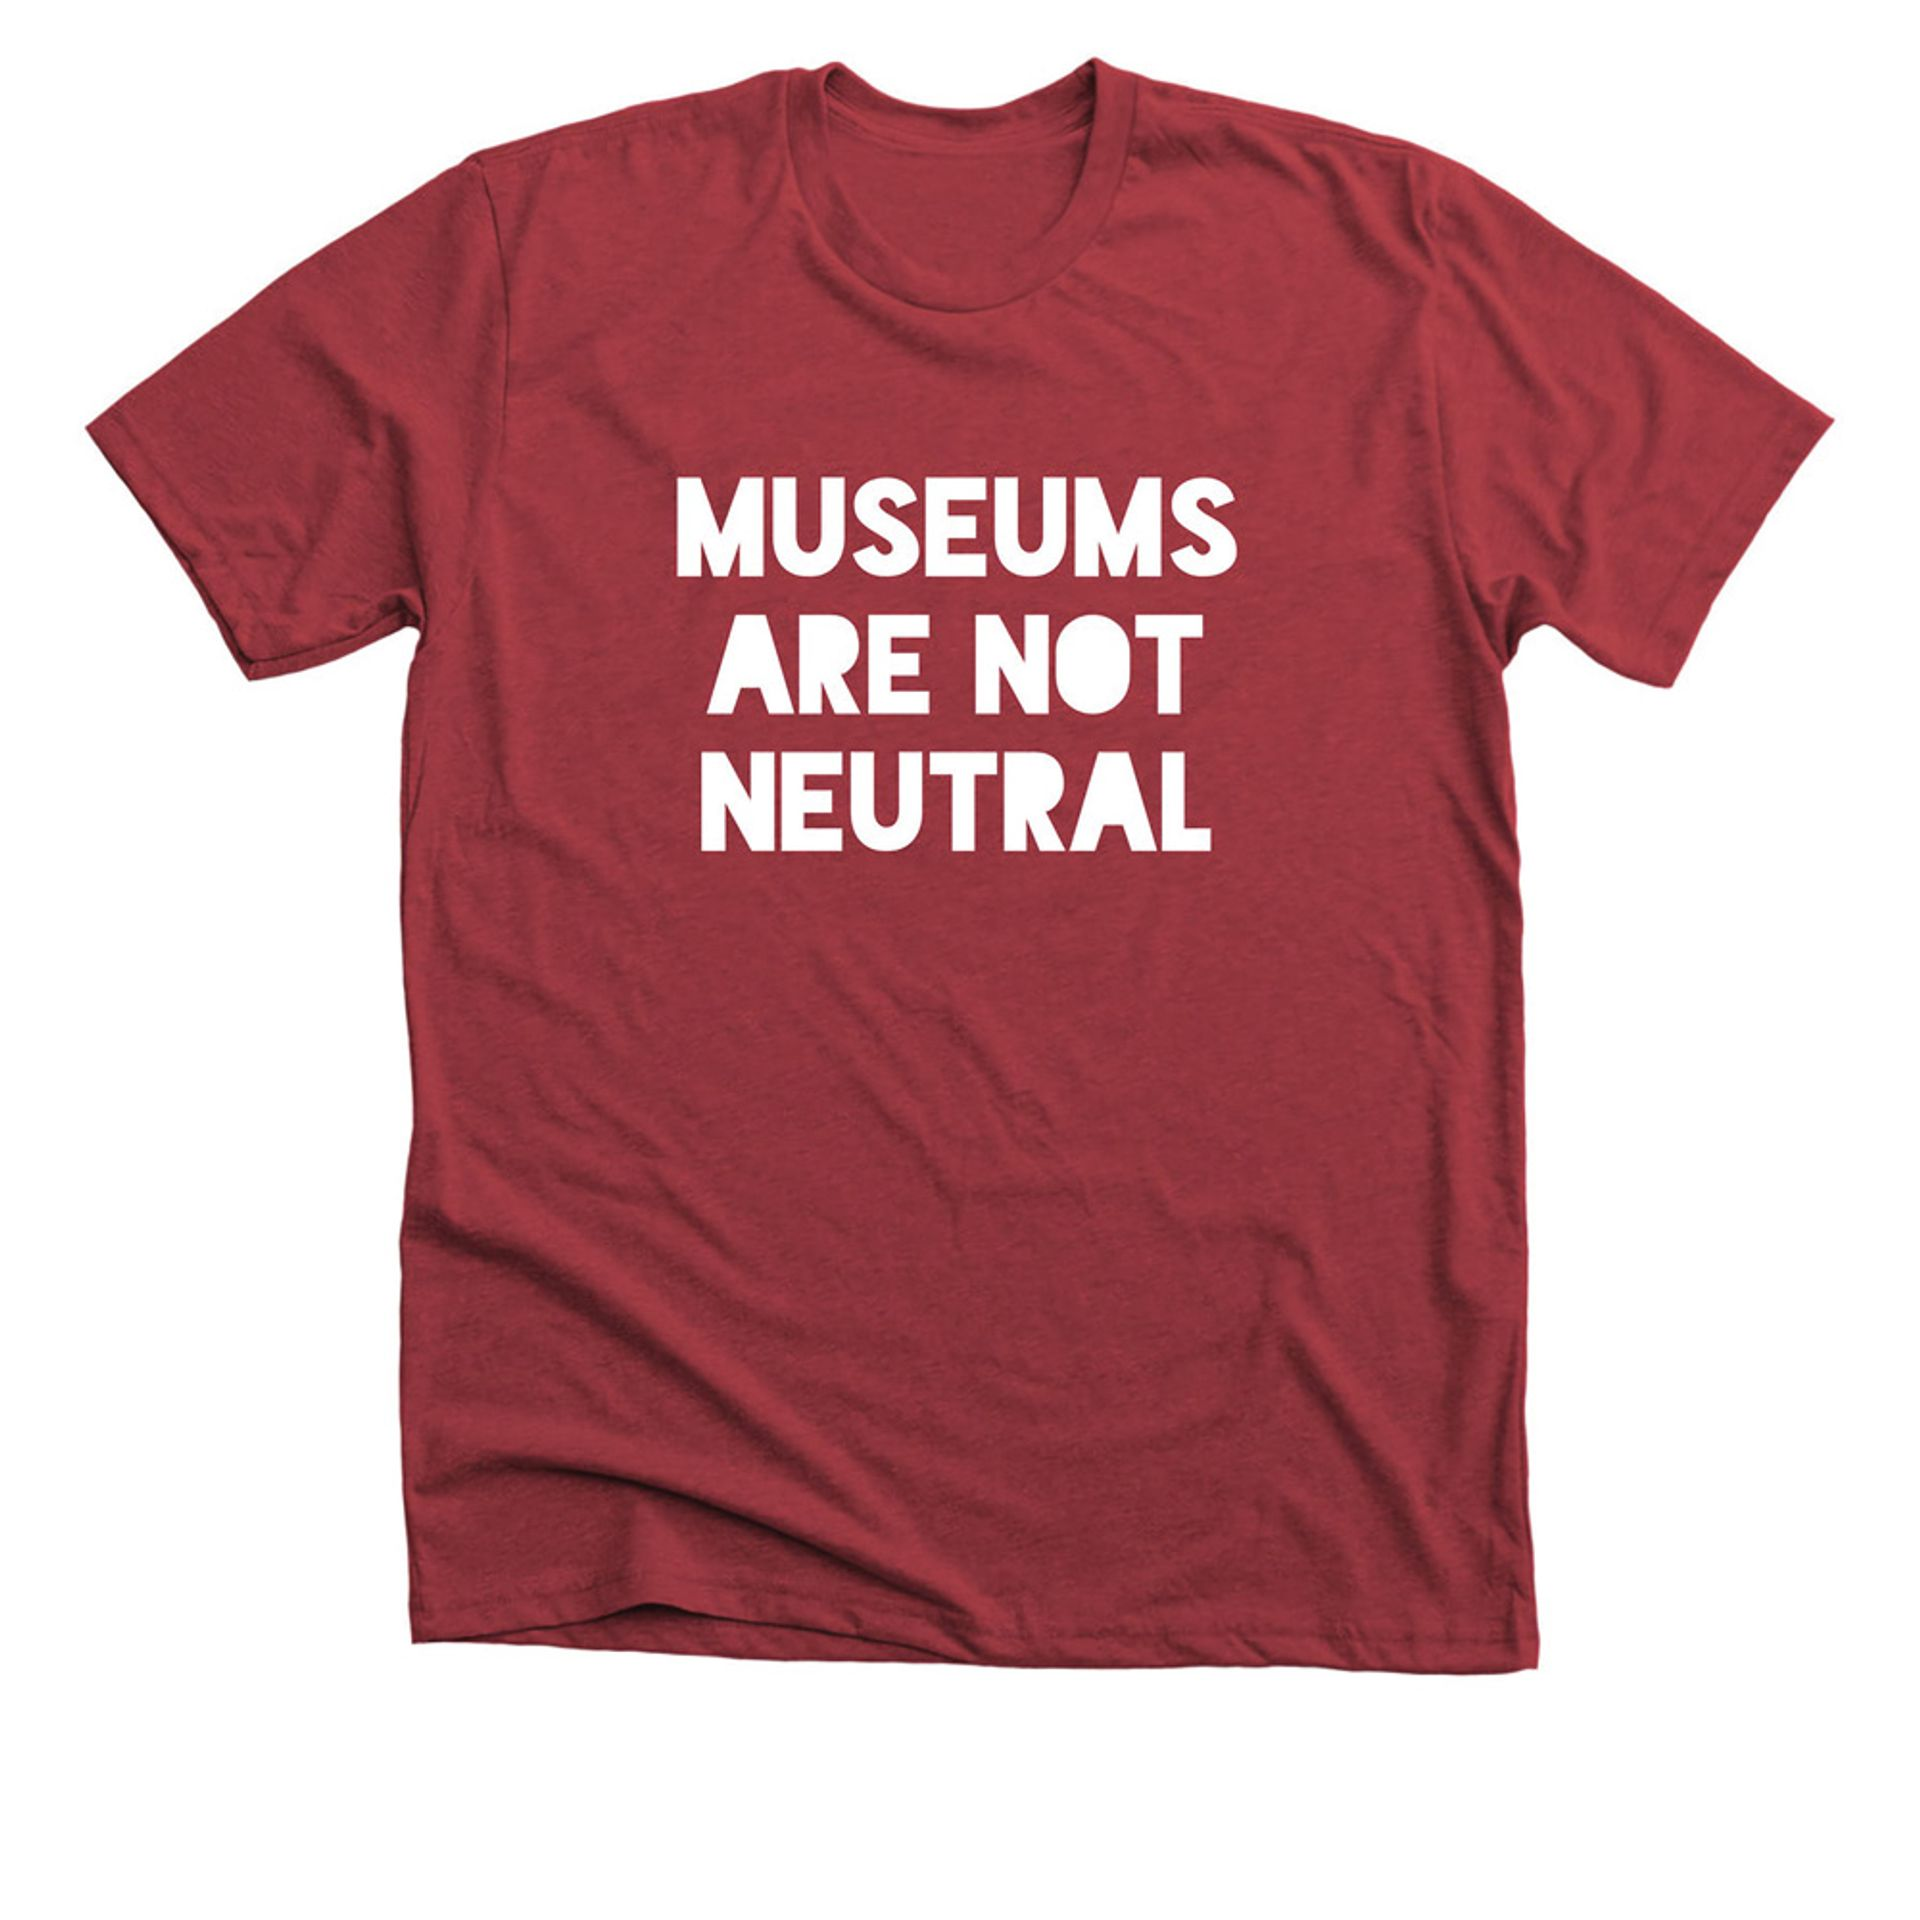 """Mike Murawski and LaTanya Autry's T-shirt, designed to """"spark conversations about the role of museums"""" Mike Murawski"""